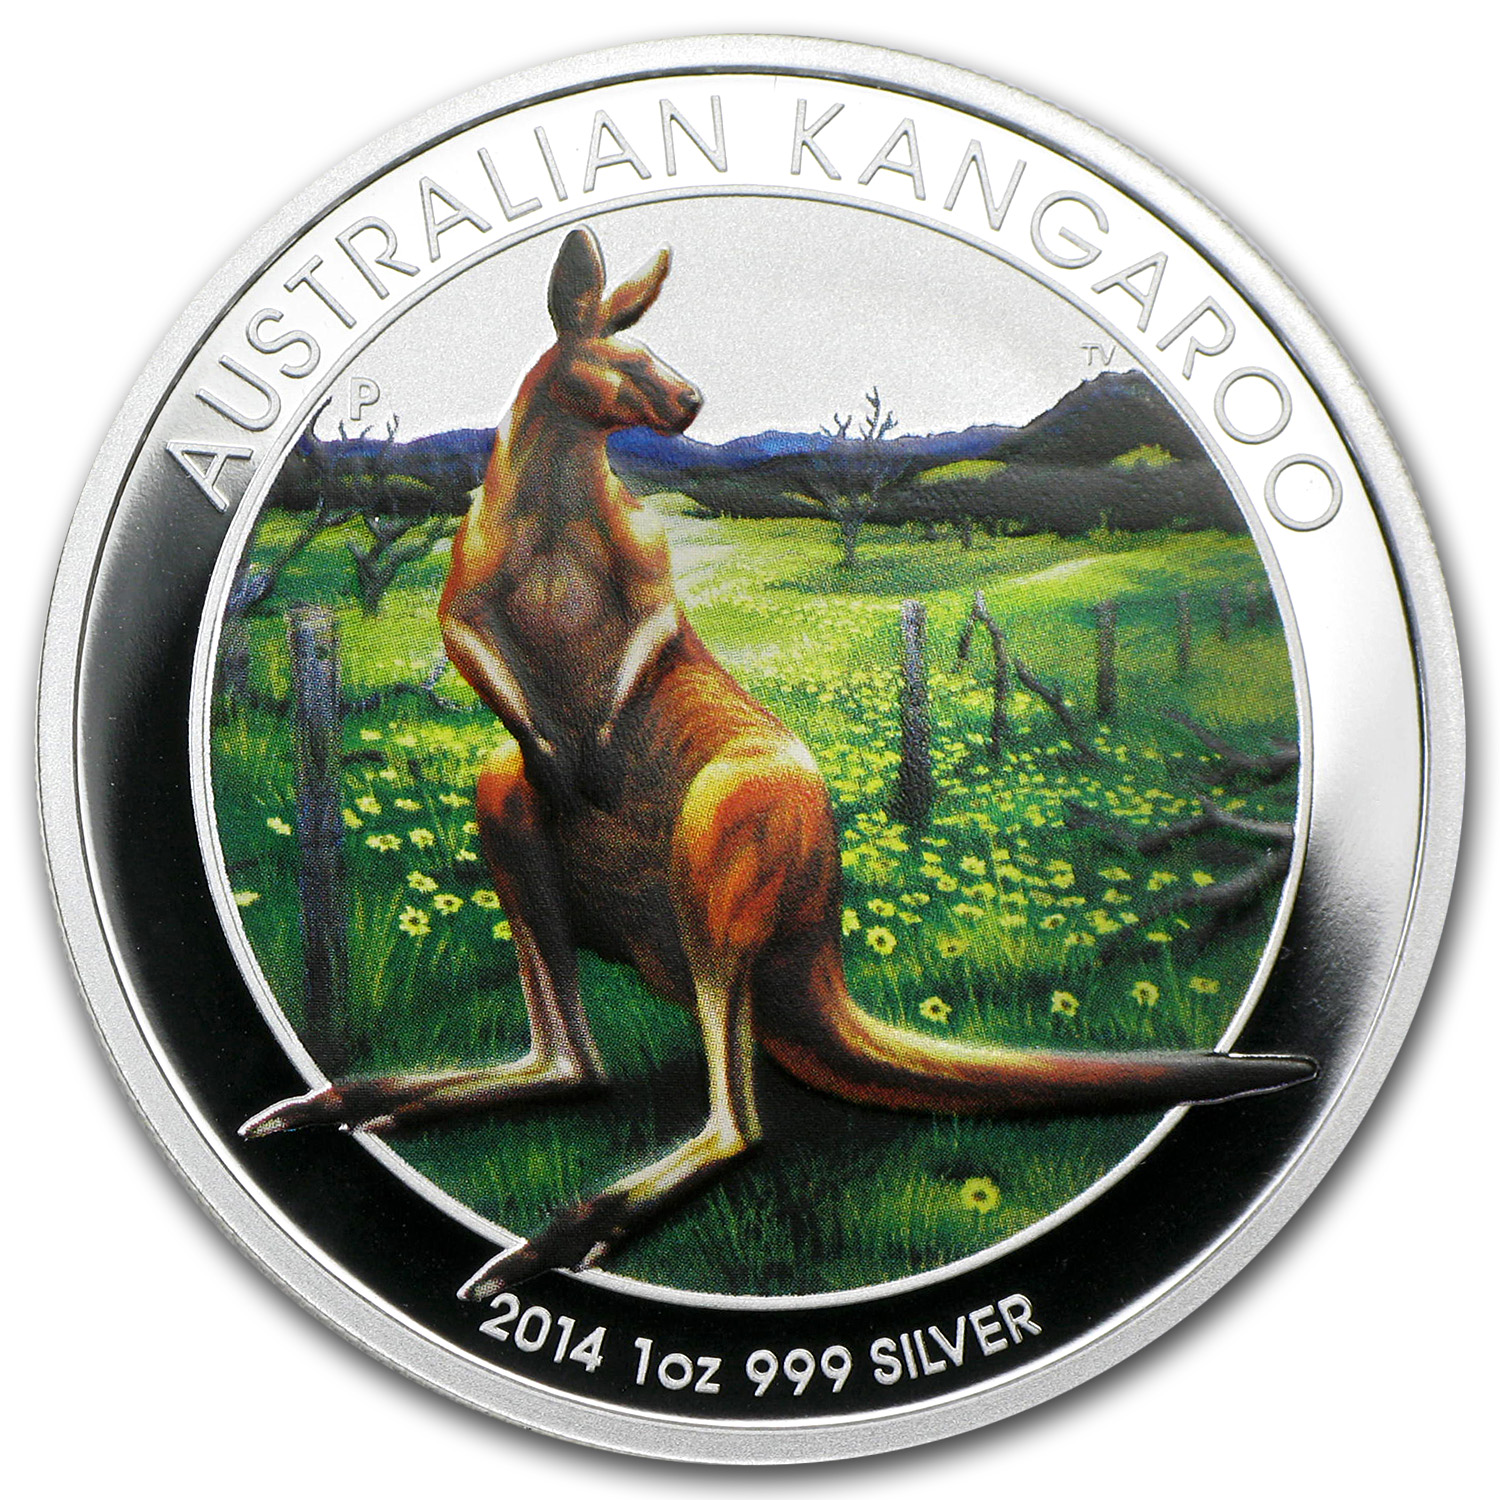 2014 1 oz Silver Kangaroo World Money Fair BU (Berlin, Colorized)